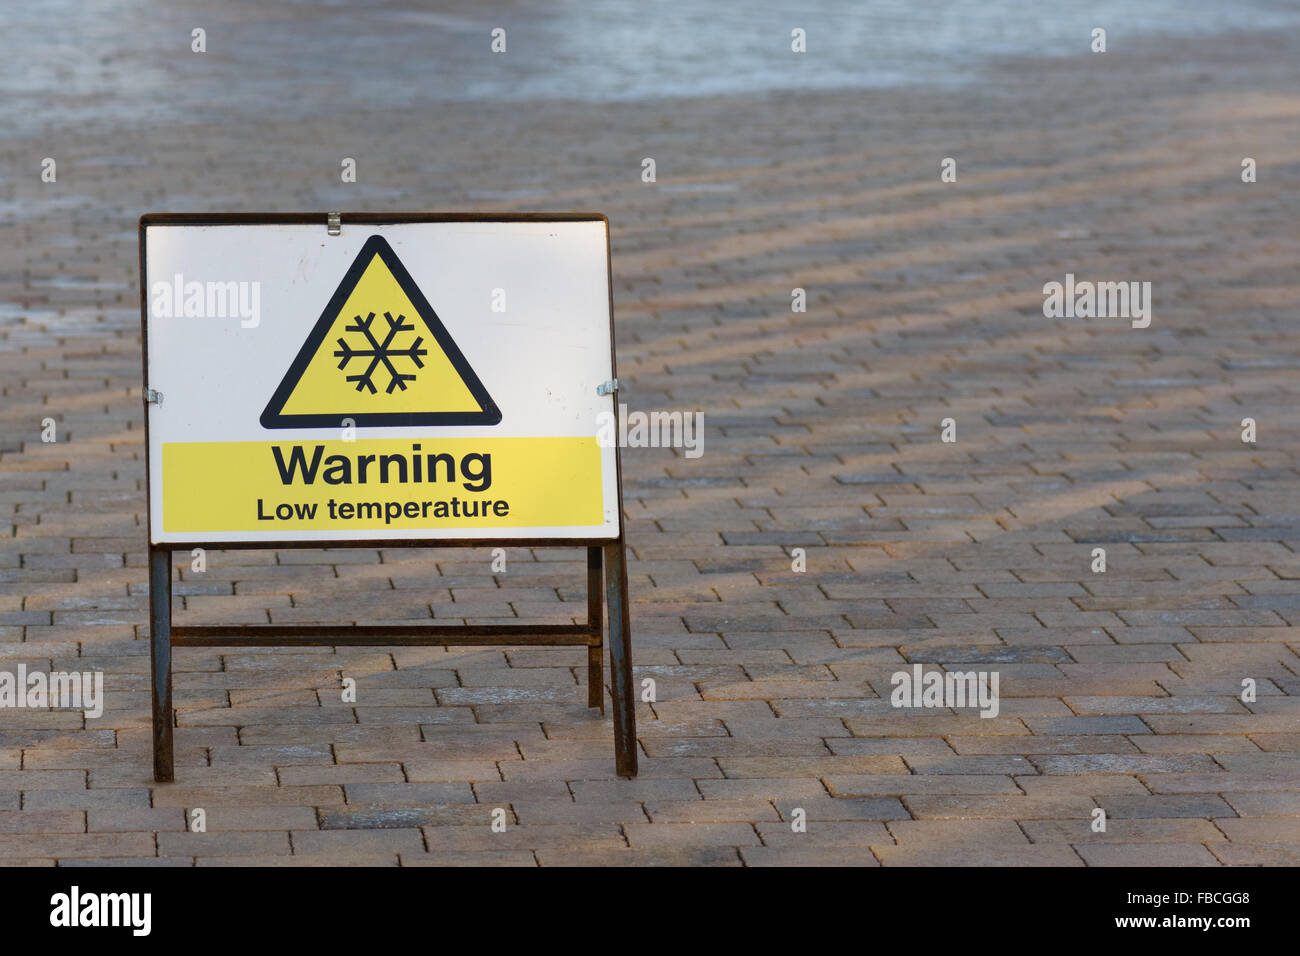 'Warning Low temperature' sign alerting pedestrians to icy slippery surface - Stock Image